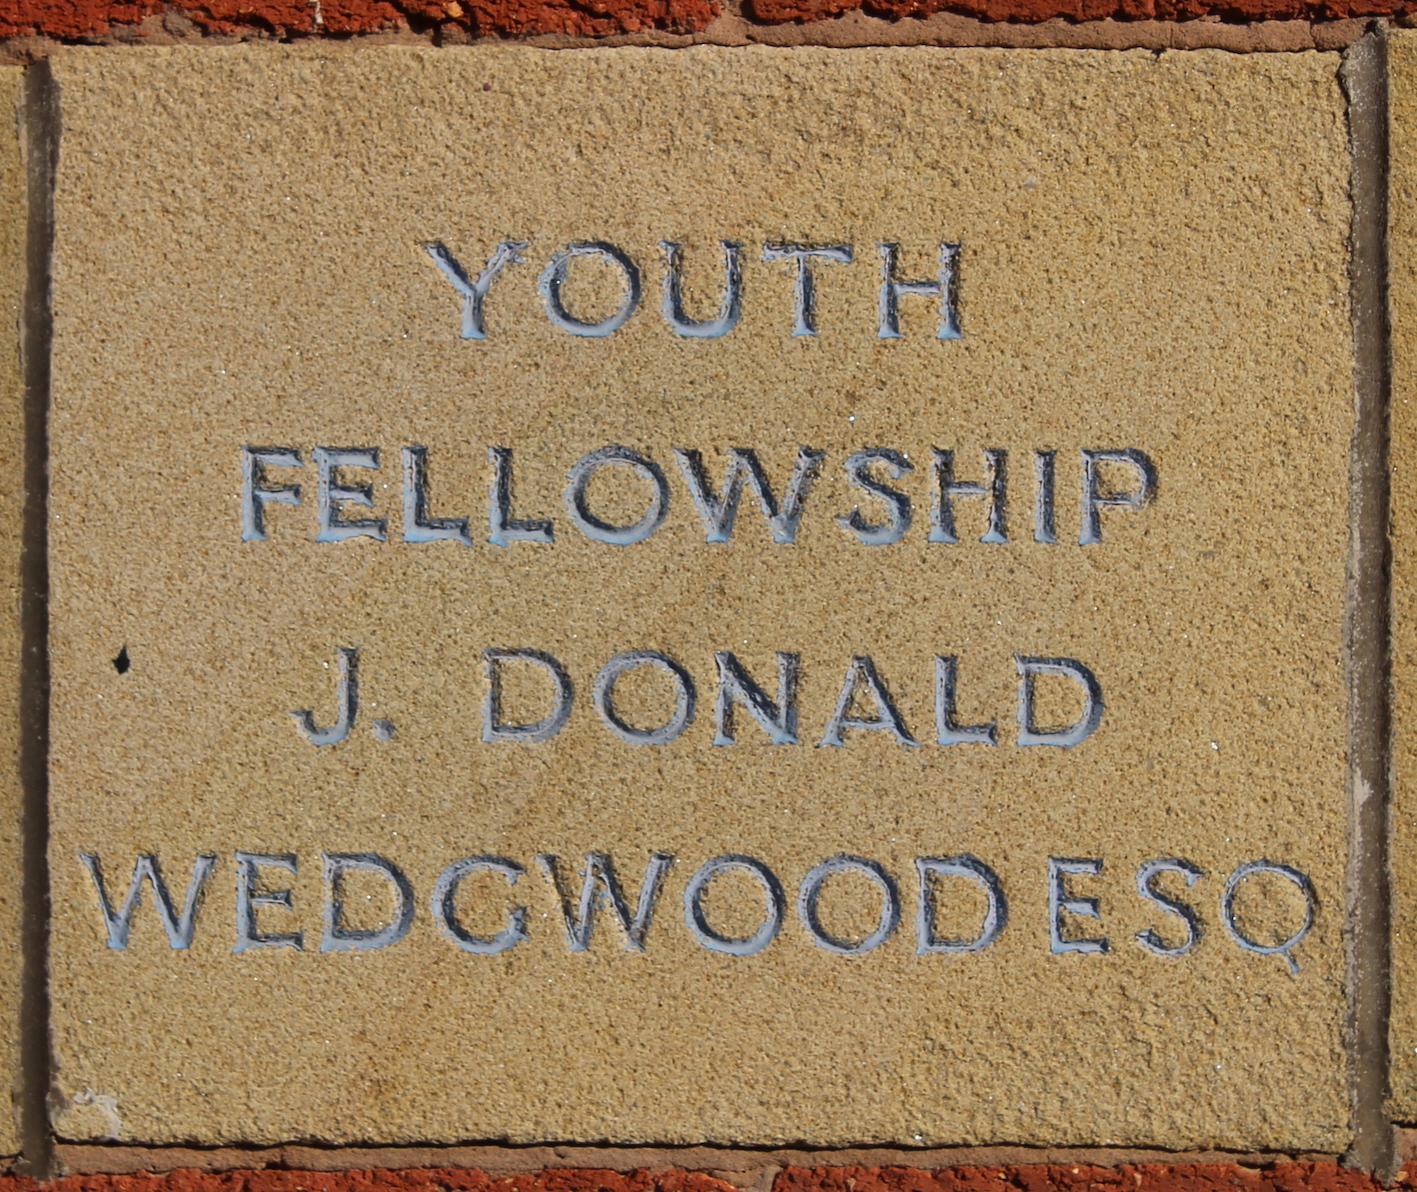 Memorial stone laid by J Donald Wedgewood